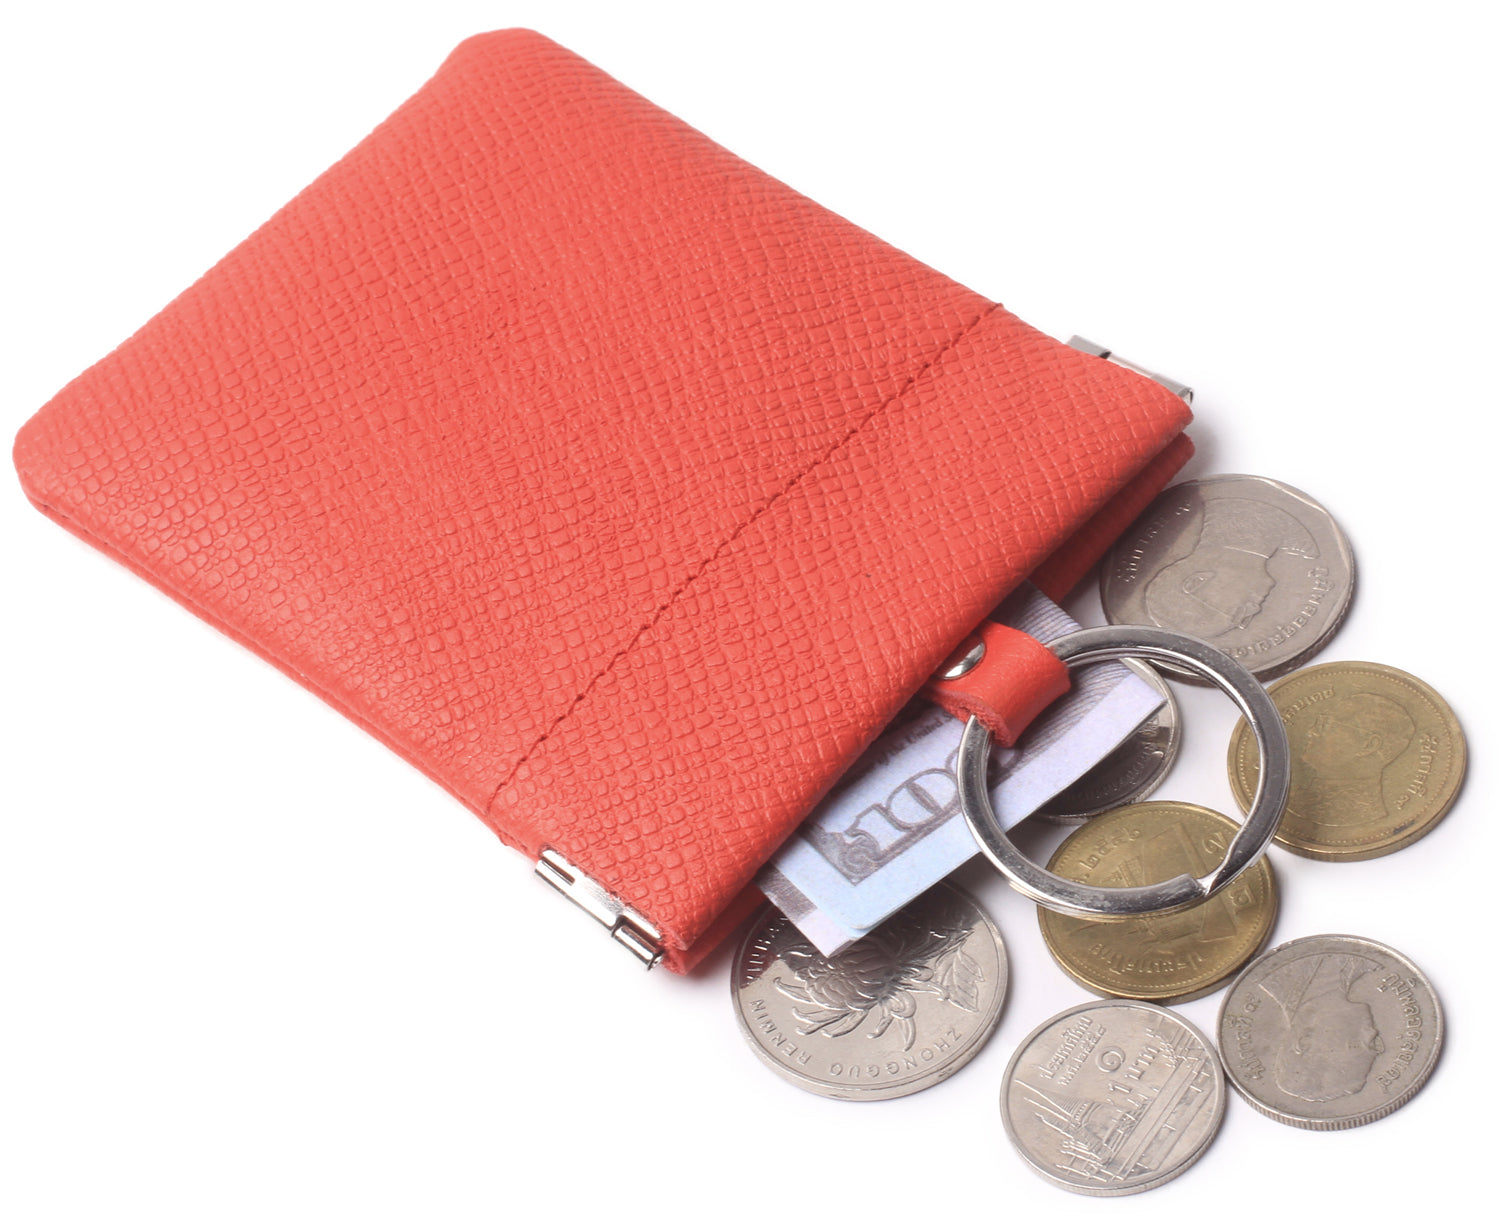 Leather Squeeze Coin Purse Pouch Change Holder For Men & Woman With Key Chain and Key Ring Small Size BG3022 Red - Borgasets